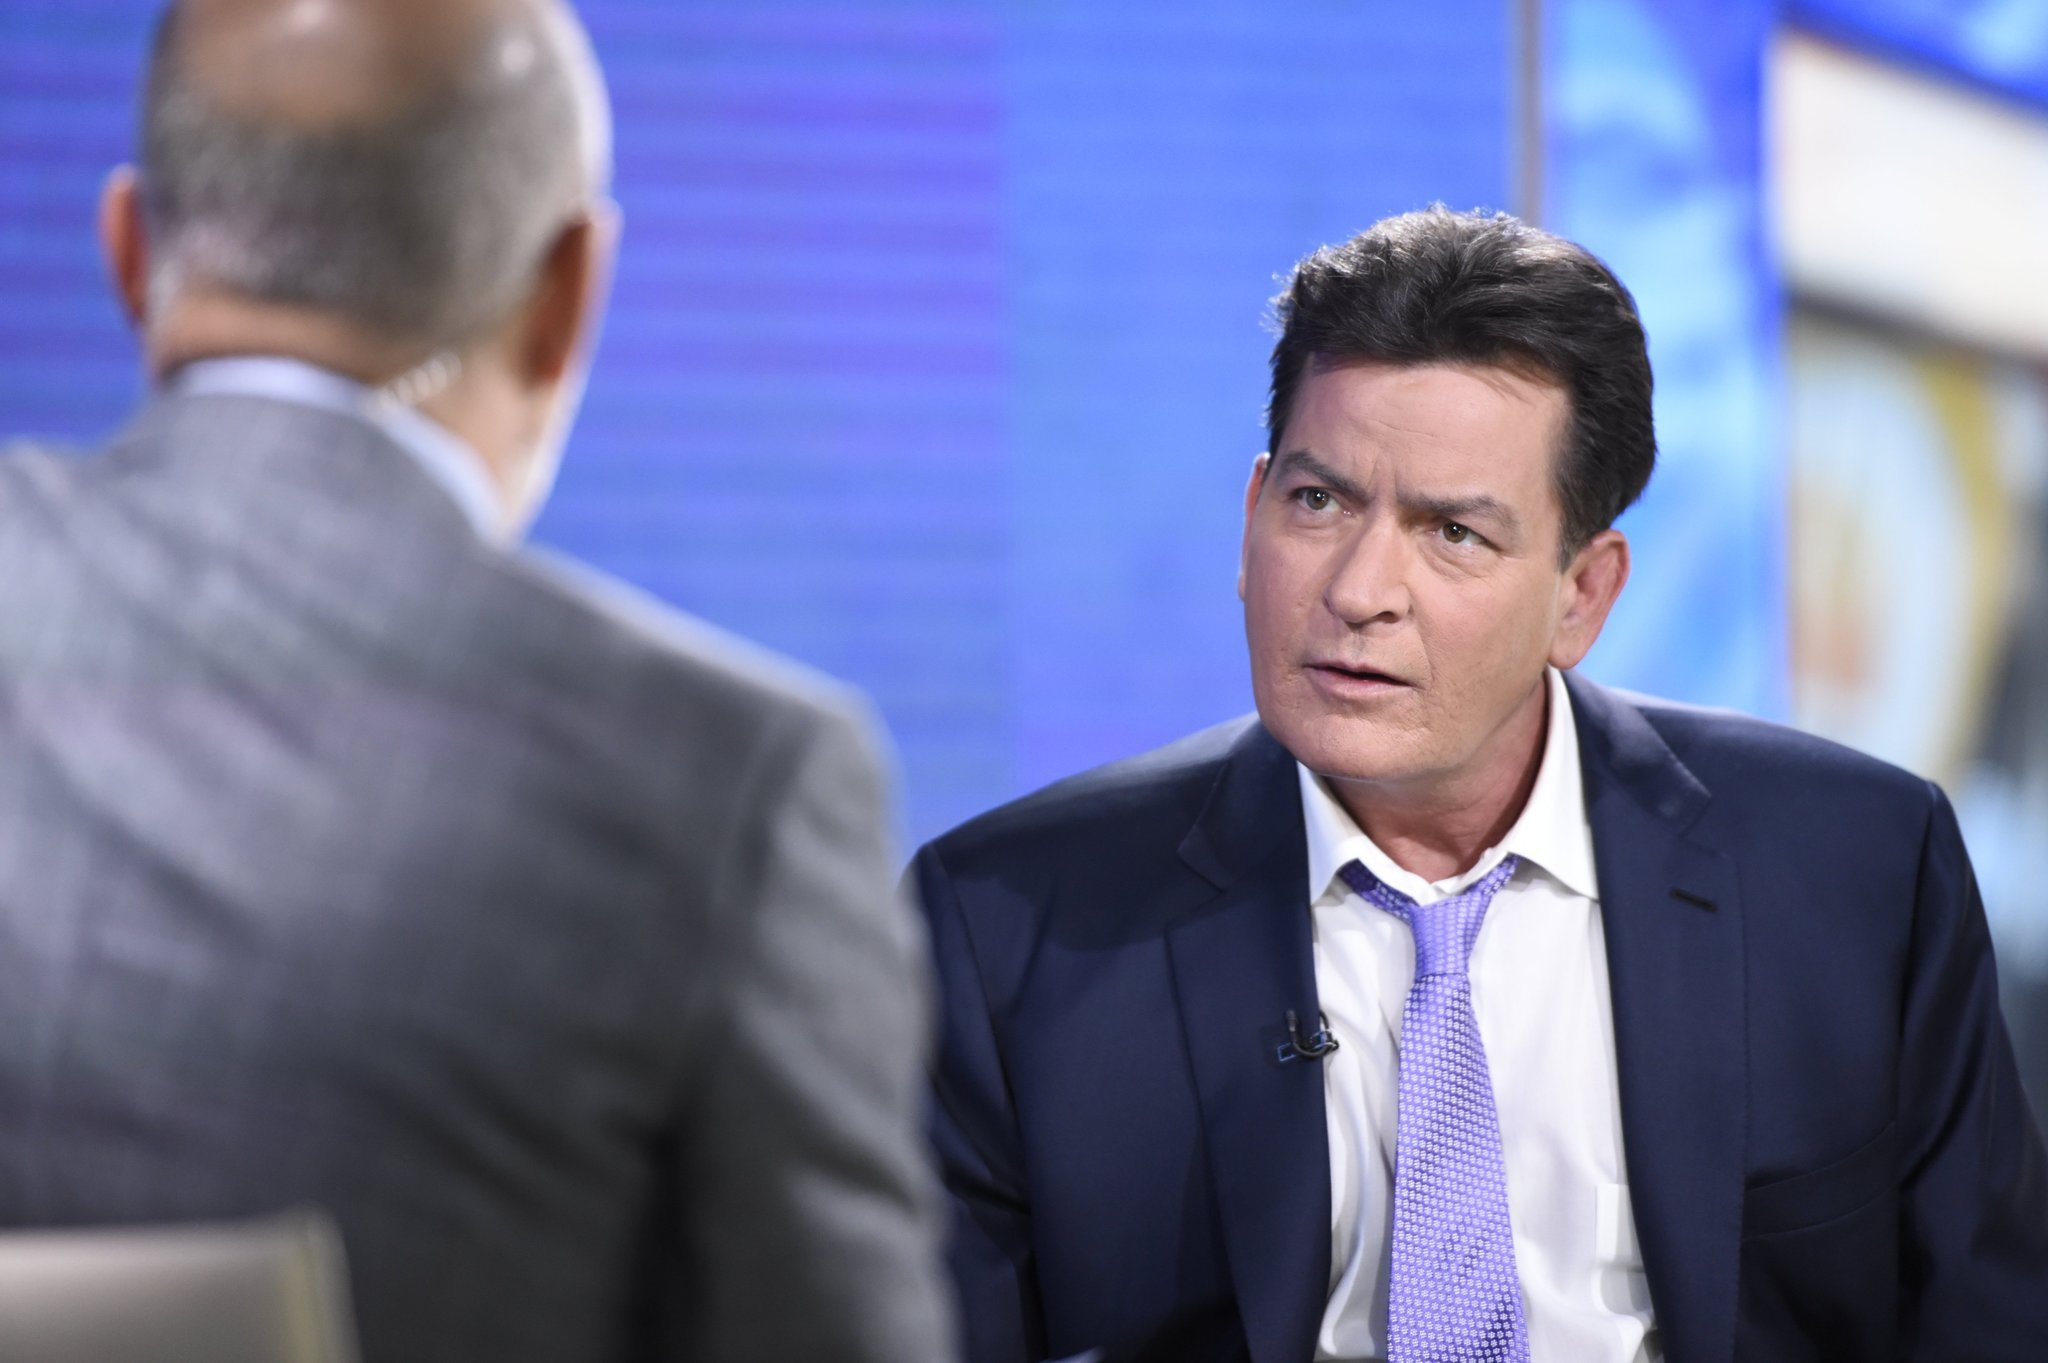 la-et-mg-charlie-sheen-hiv-positive-faq-20151117